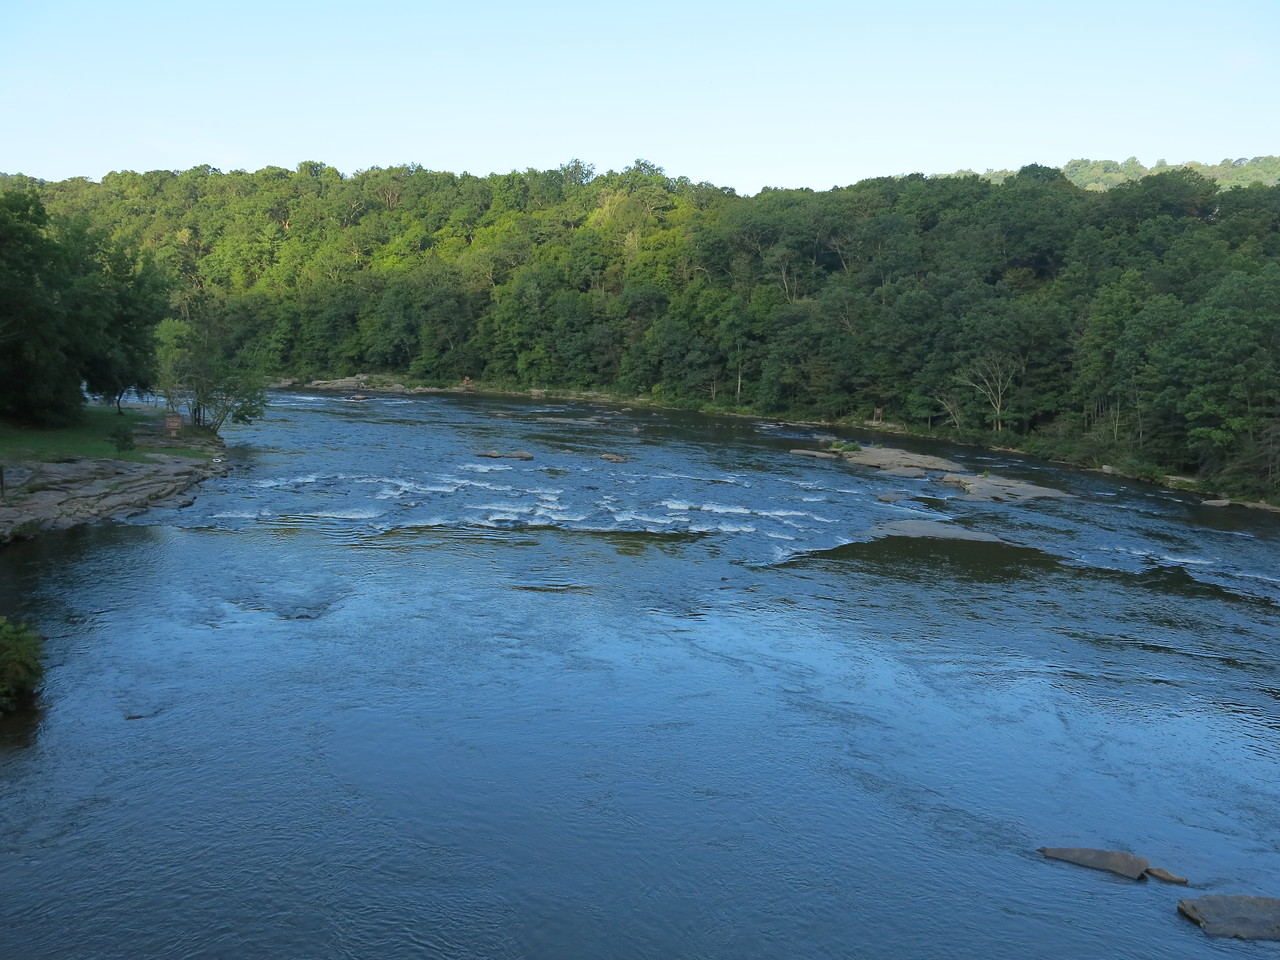 The Yough River seen from low bridge, looking downstream